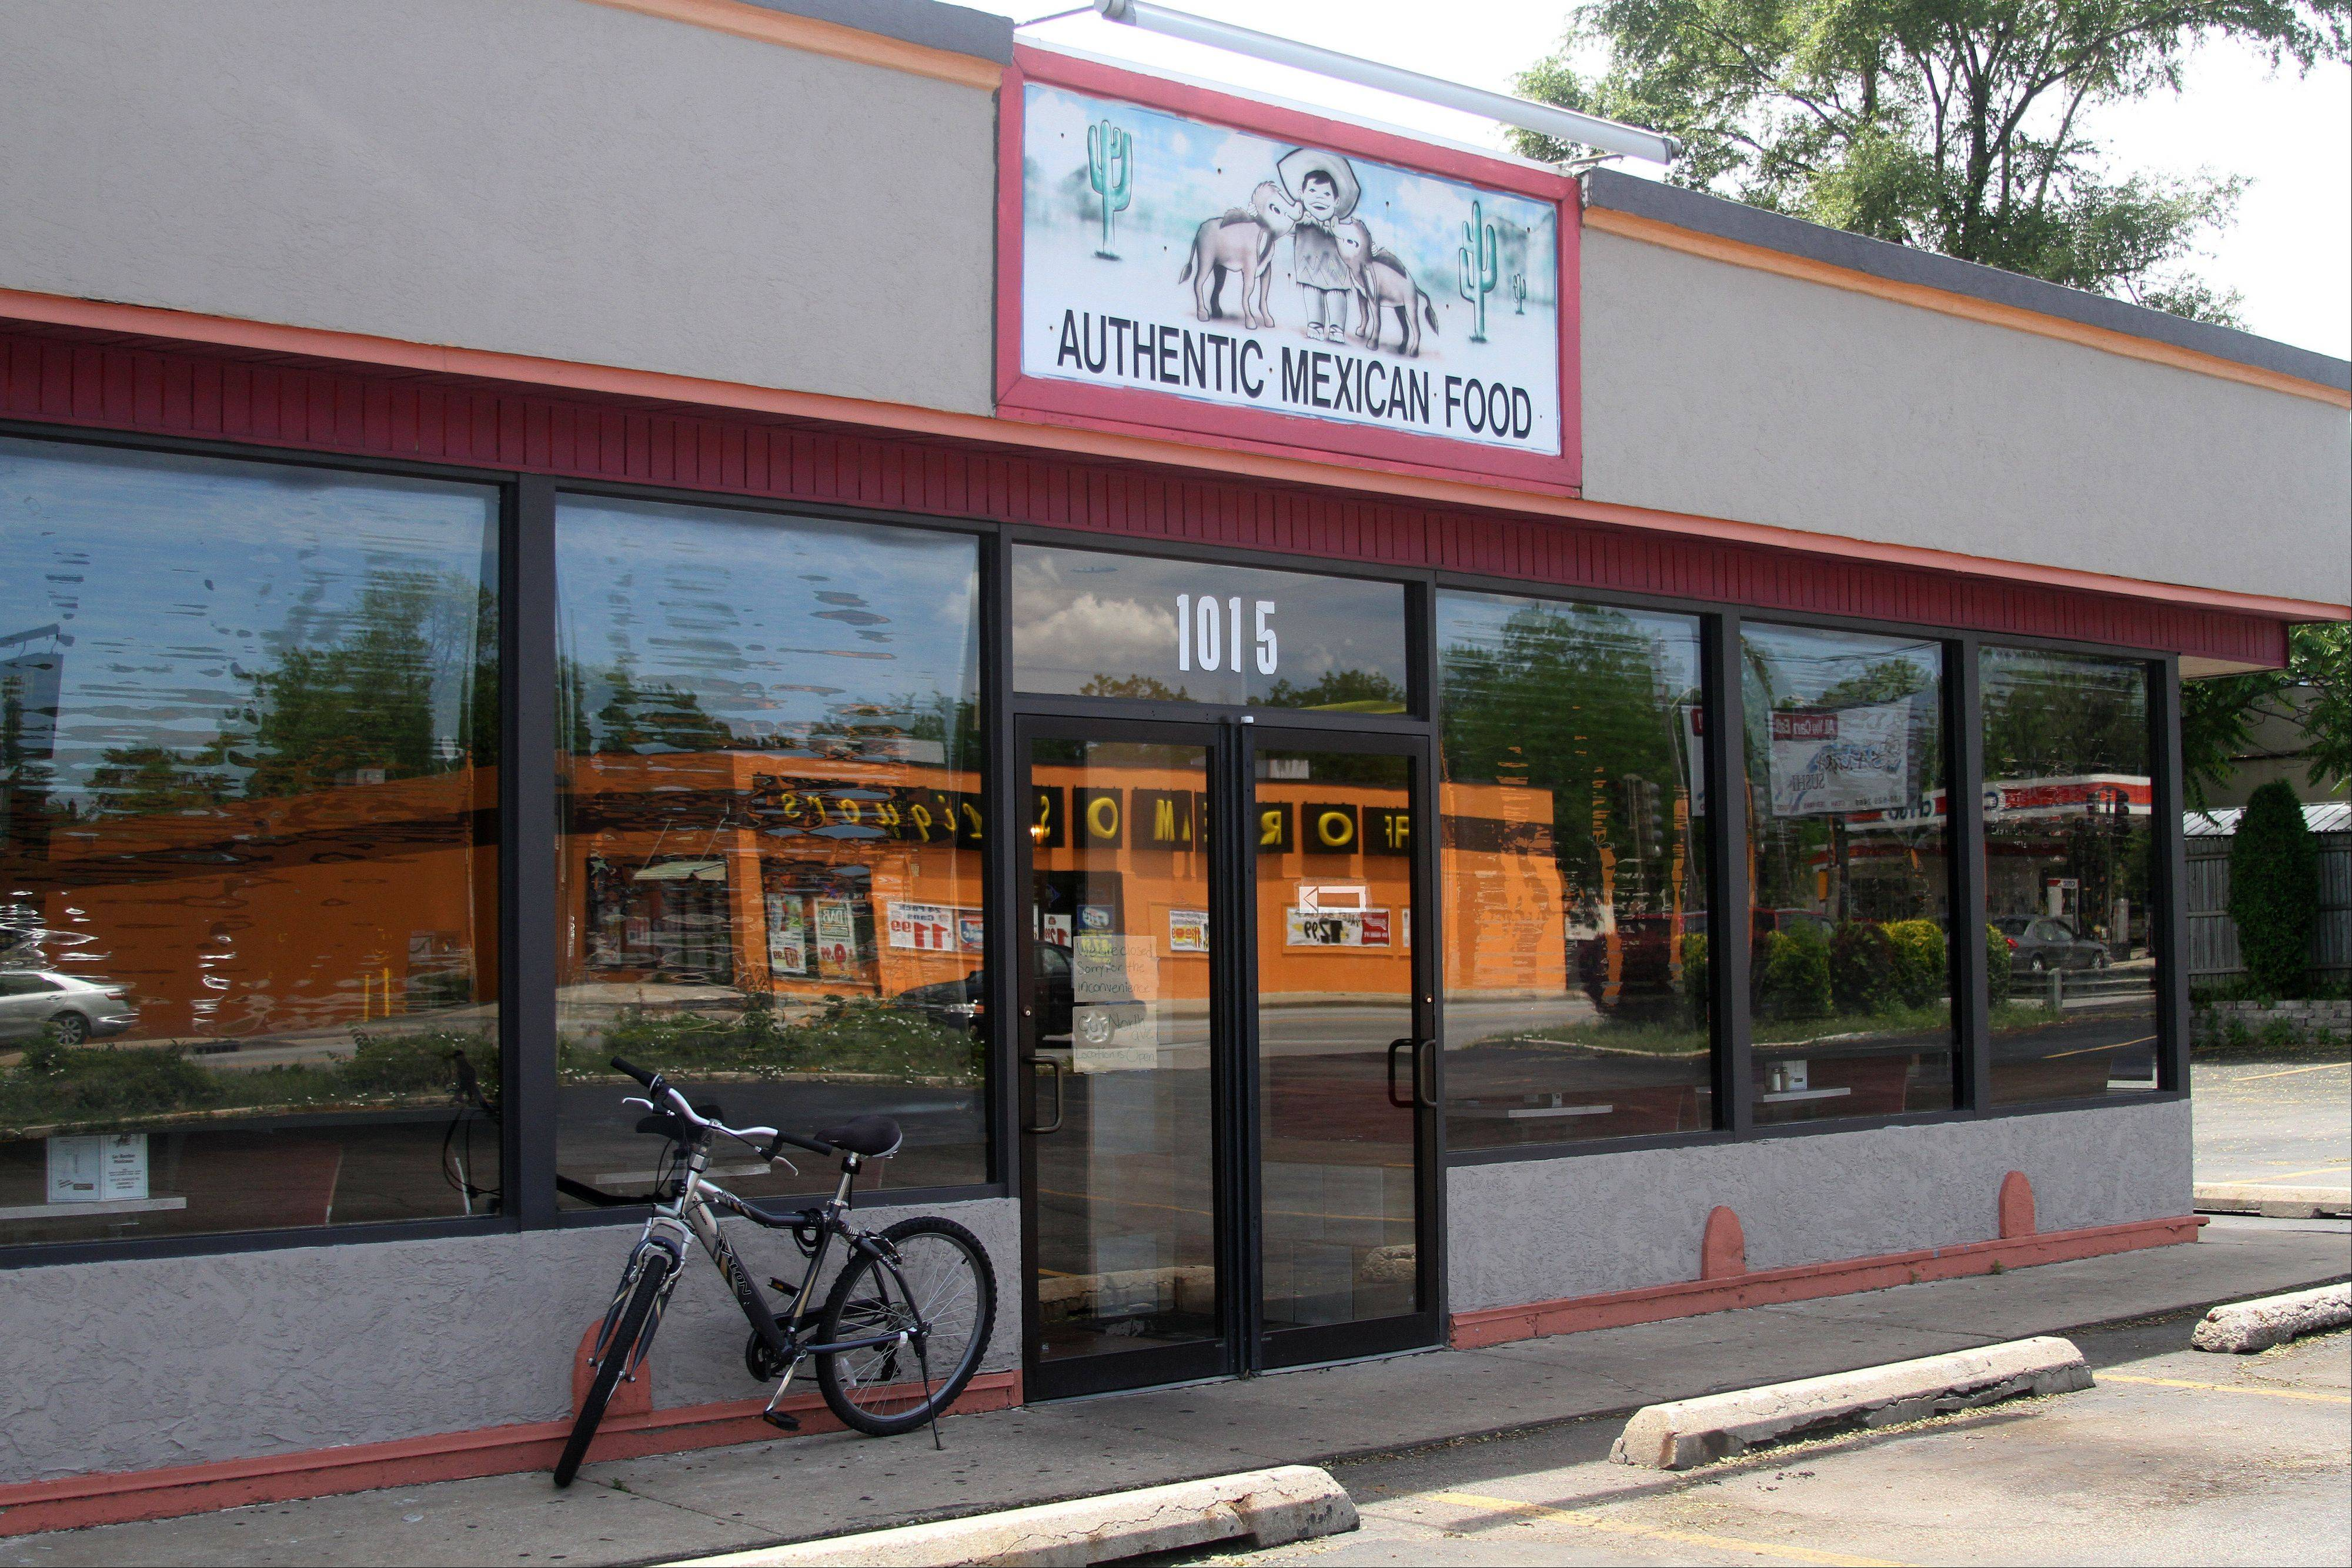 Los Burritos Mexicanos, at 1015 E. St. Charles Road, Lombard, remained closed Monday after the DuPage County Health Department said there were four confirmed cases of the same strain of E. coli bacteria in people who ate at the restaurant.